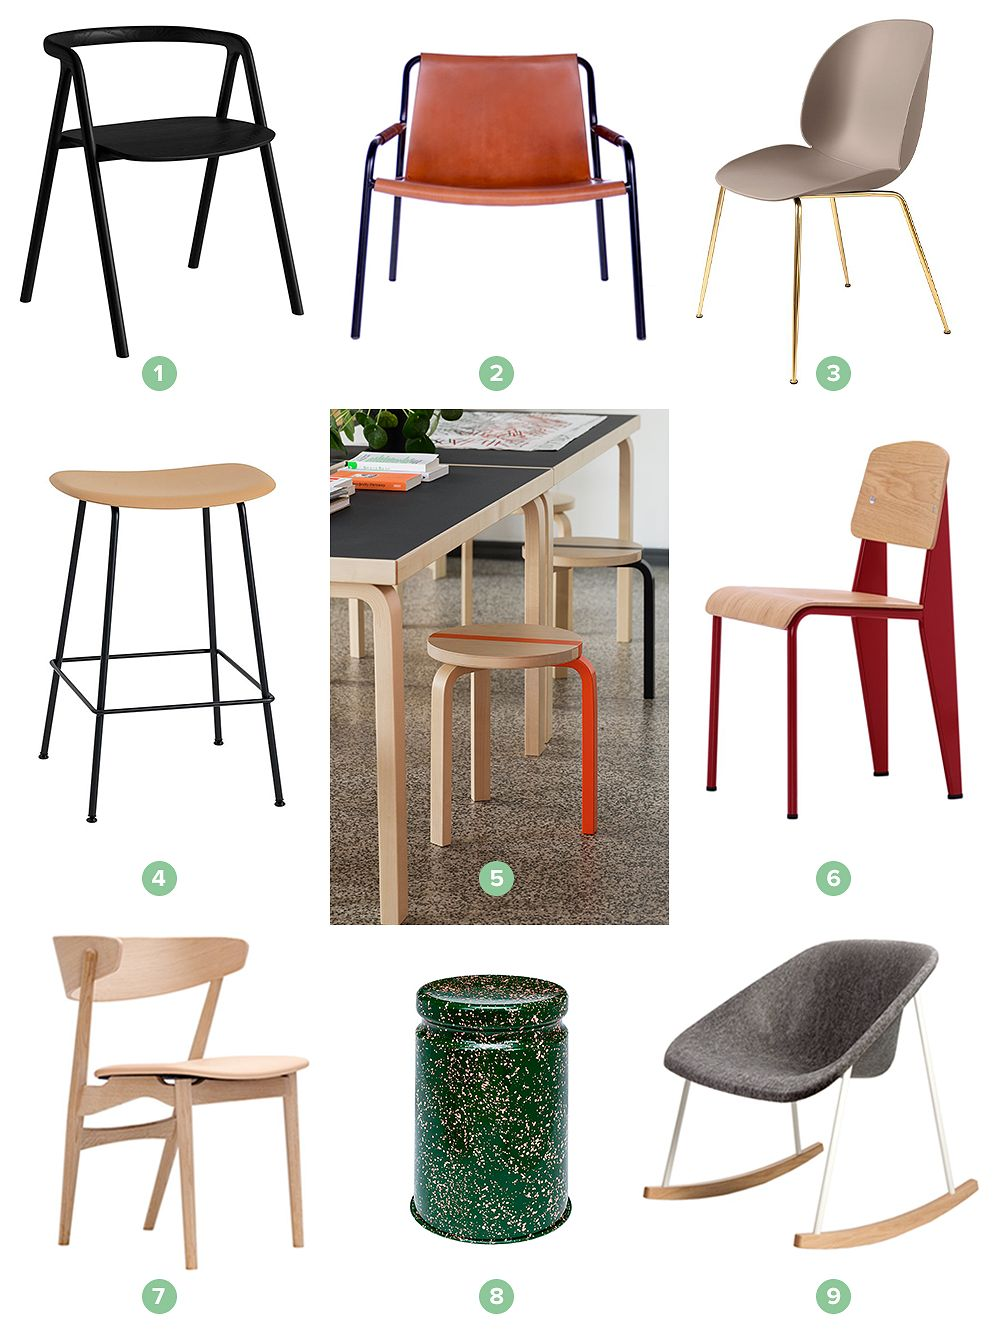 Chairs at Finnish Design Shop's Summer Sale